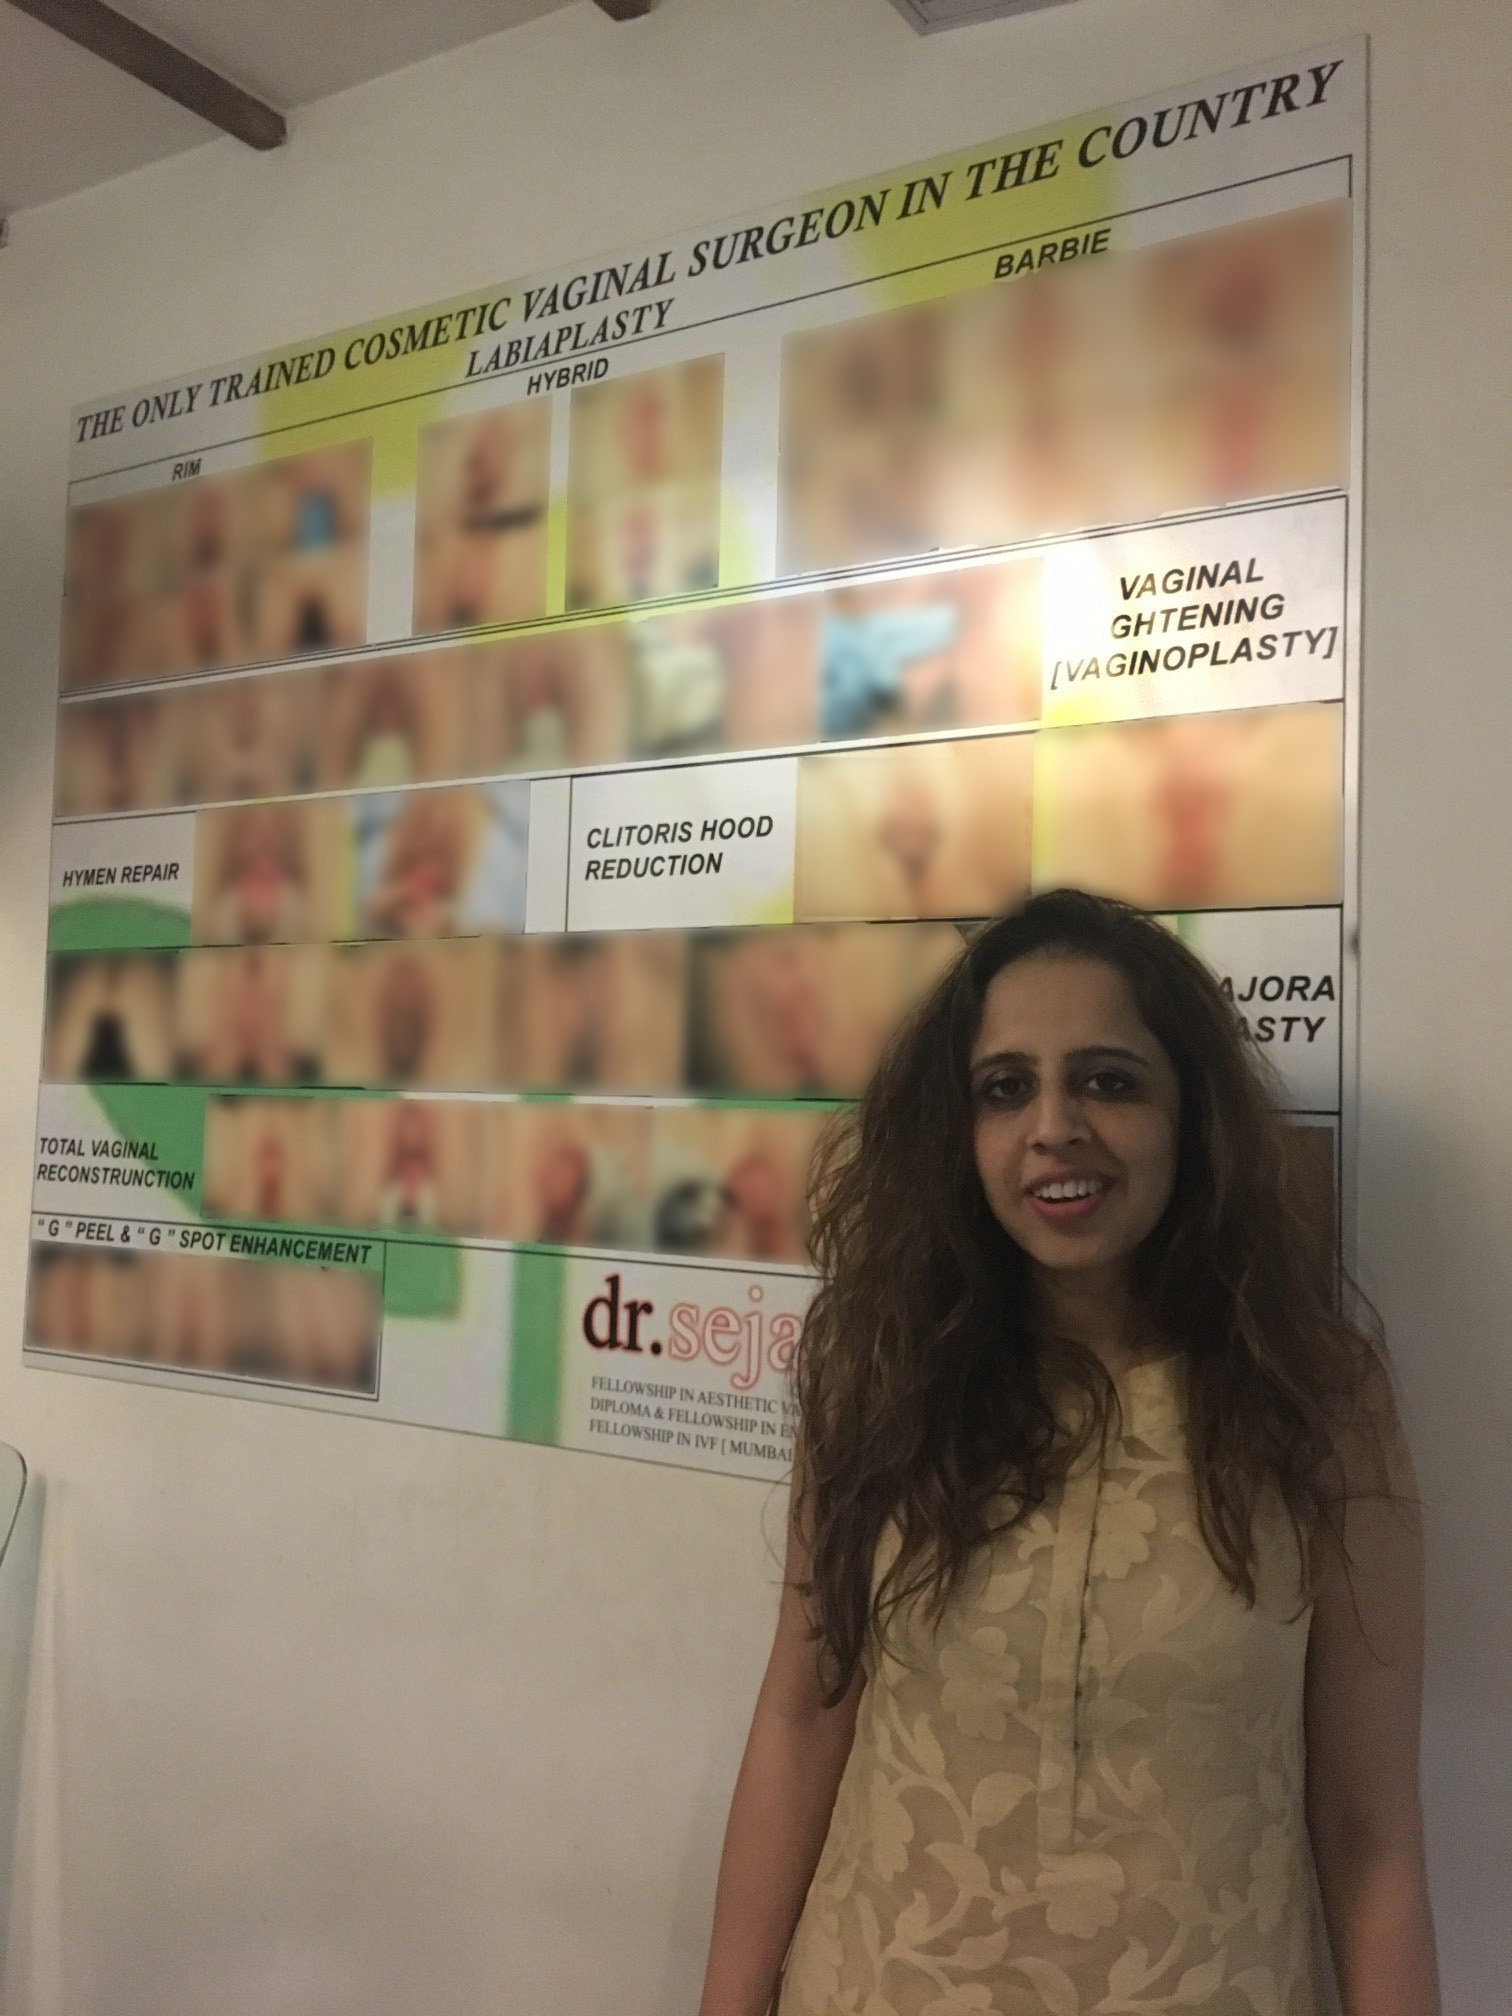 Dr Sejal Desai offers 'vaginal rejuvenation procedures' at her Mumbai clinic.